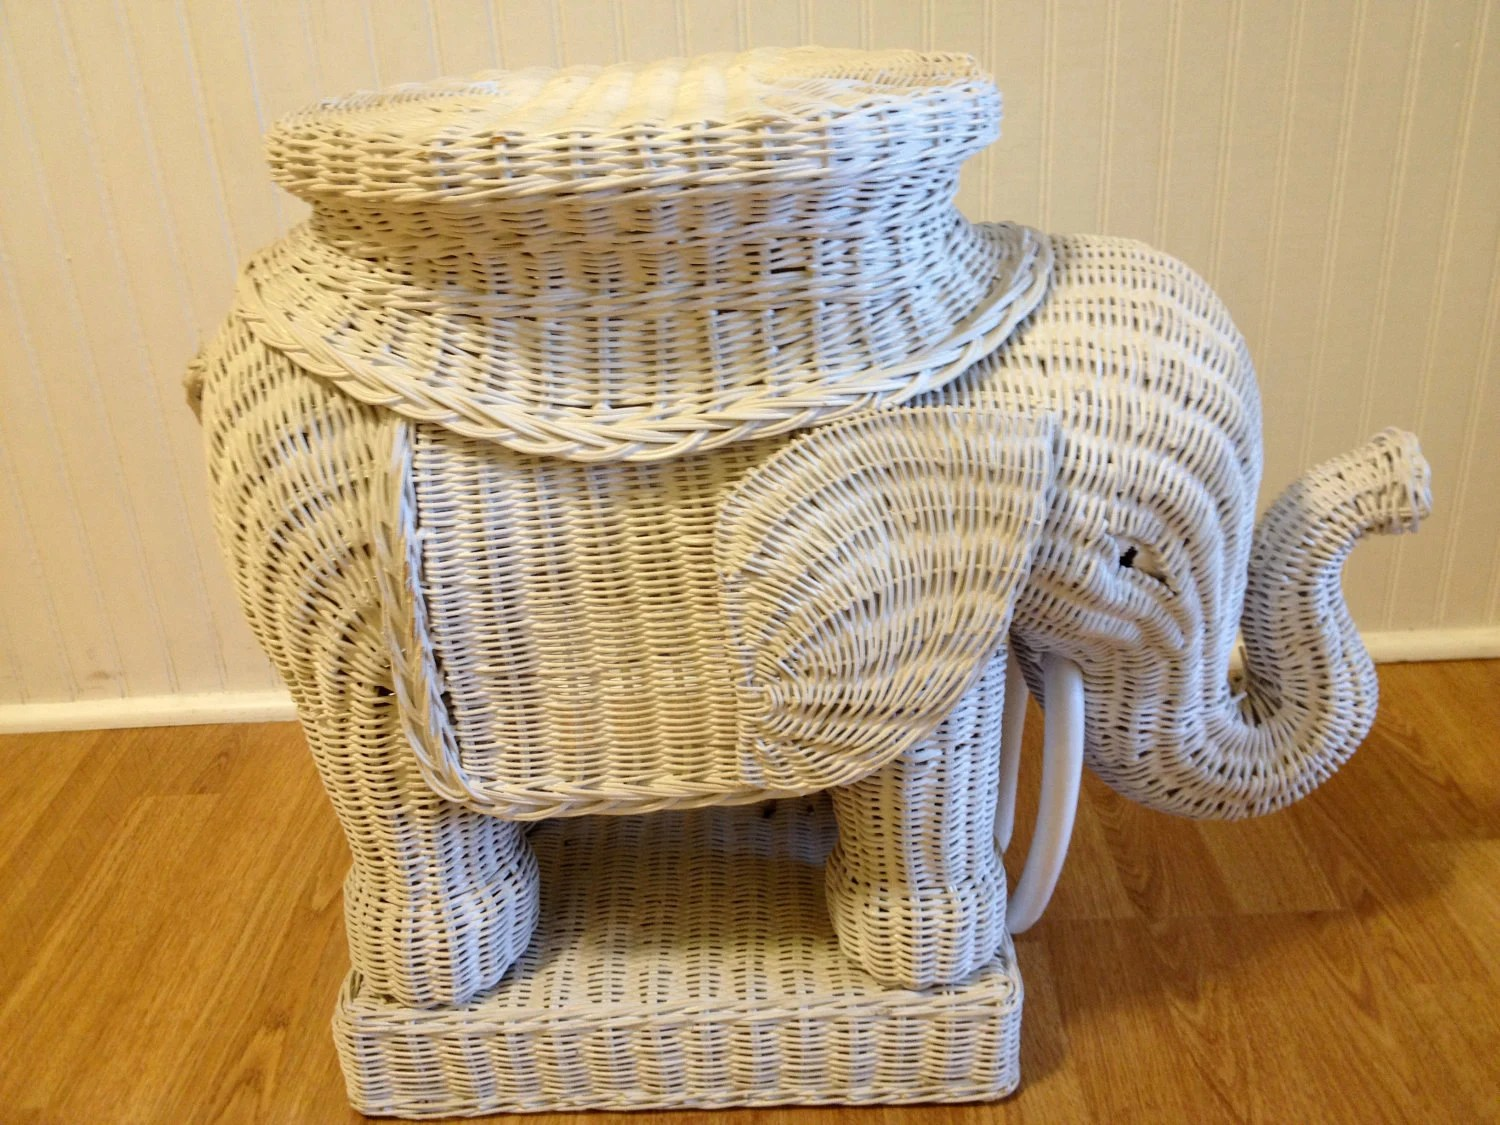 redo sling patio chairs cool outdoor dining vintage white wicker elephant table accent moroccan boho